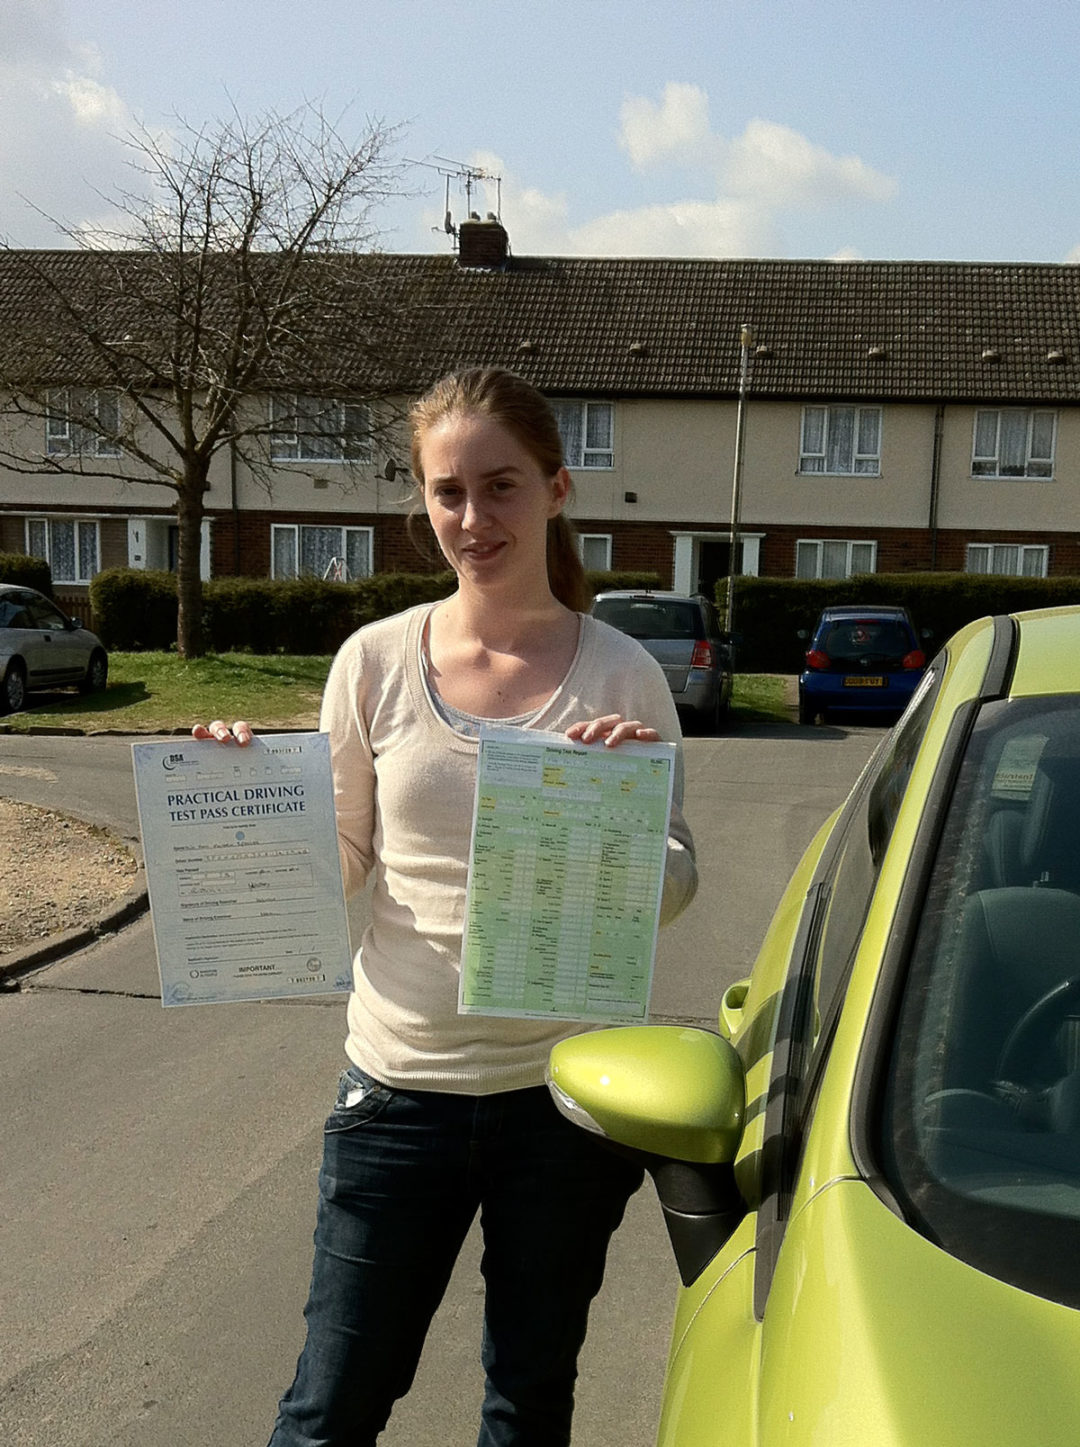 Amy S – Passed first time on 2nd April 2012